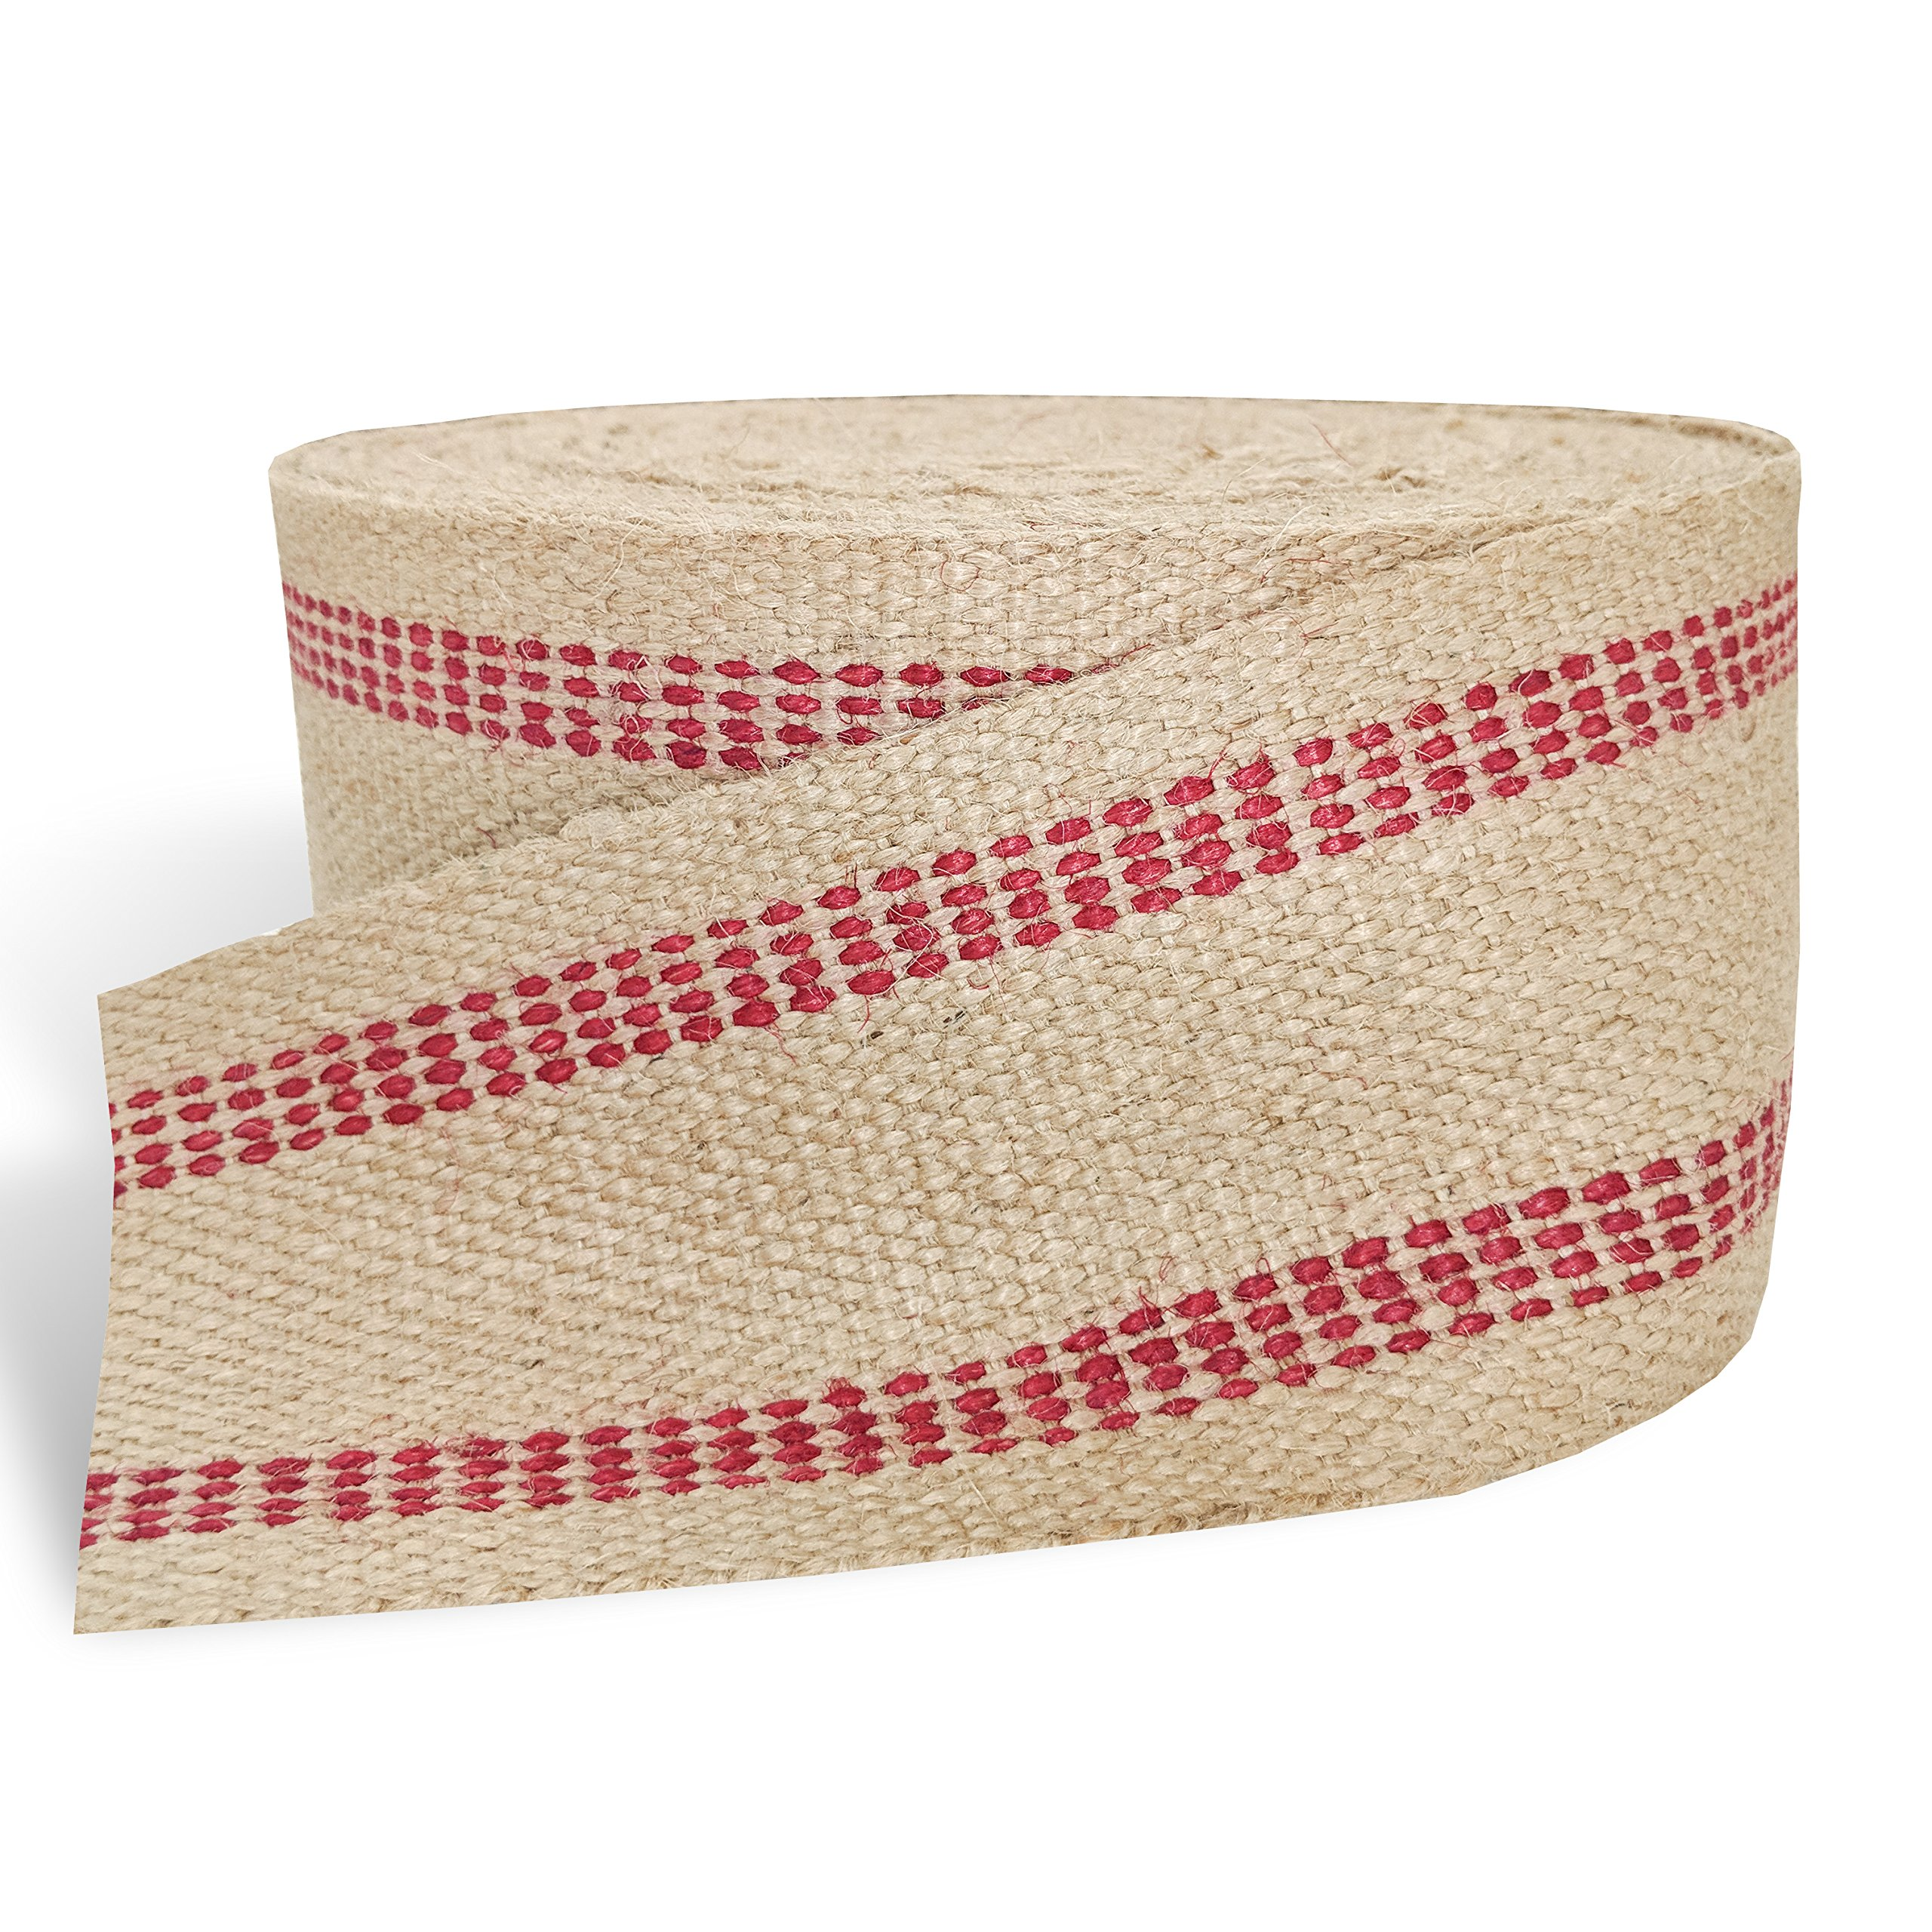 Red Upholstery Craft Jute Webbing, 11 lbs 3.5'' x 10Yd and 20 Yd Rolls (20 yd) by Wholesale Upholstery Supply (Image #4)